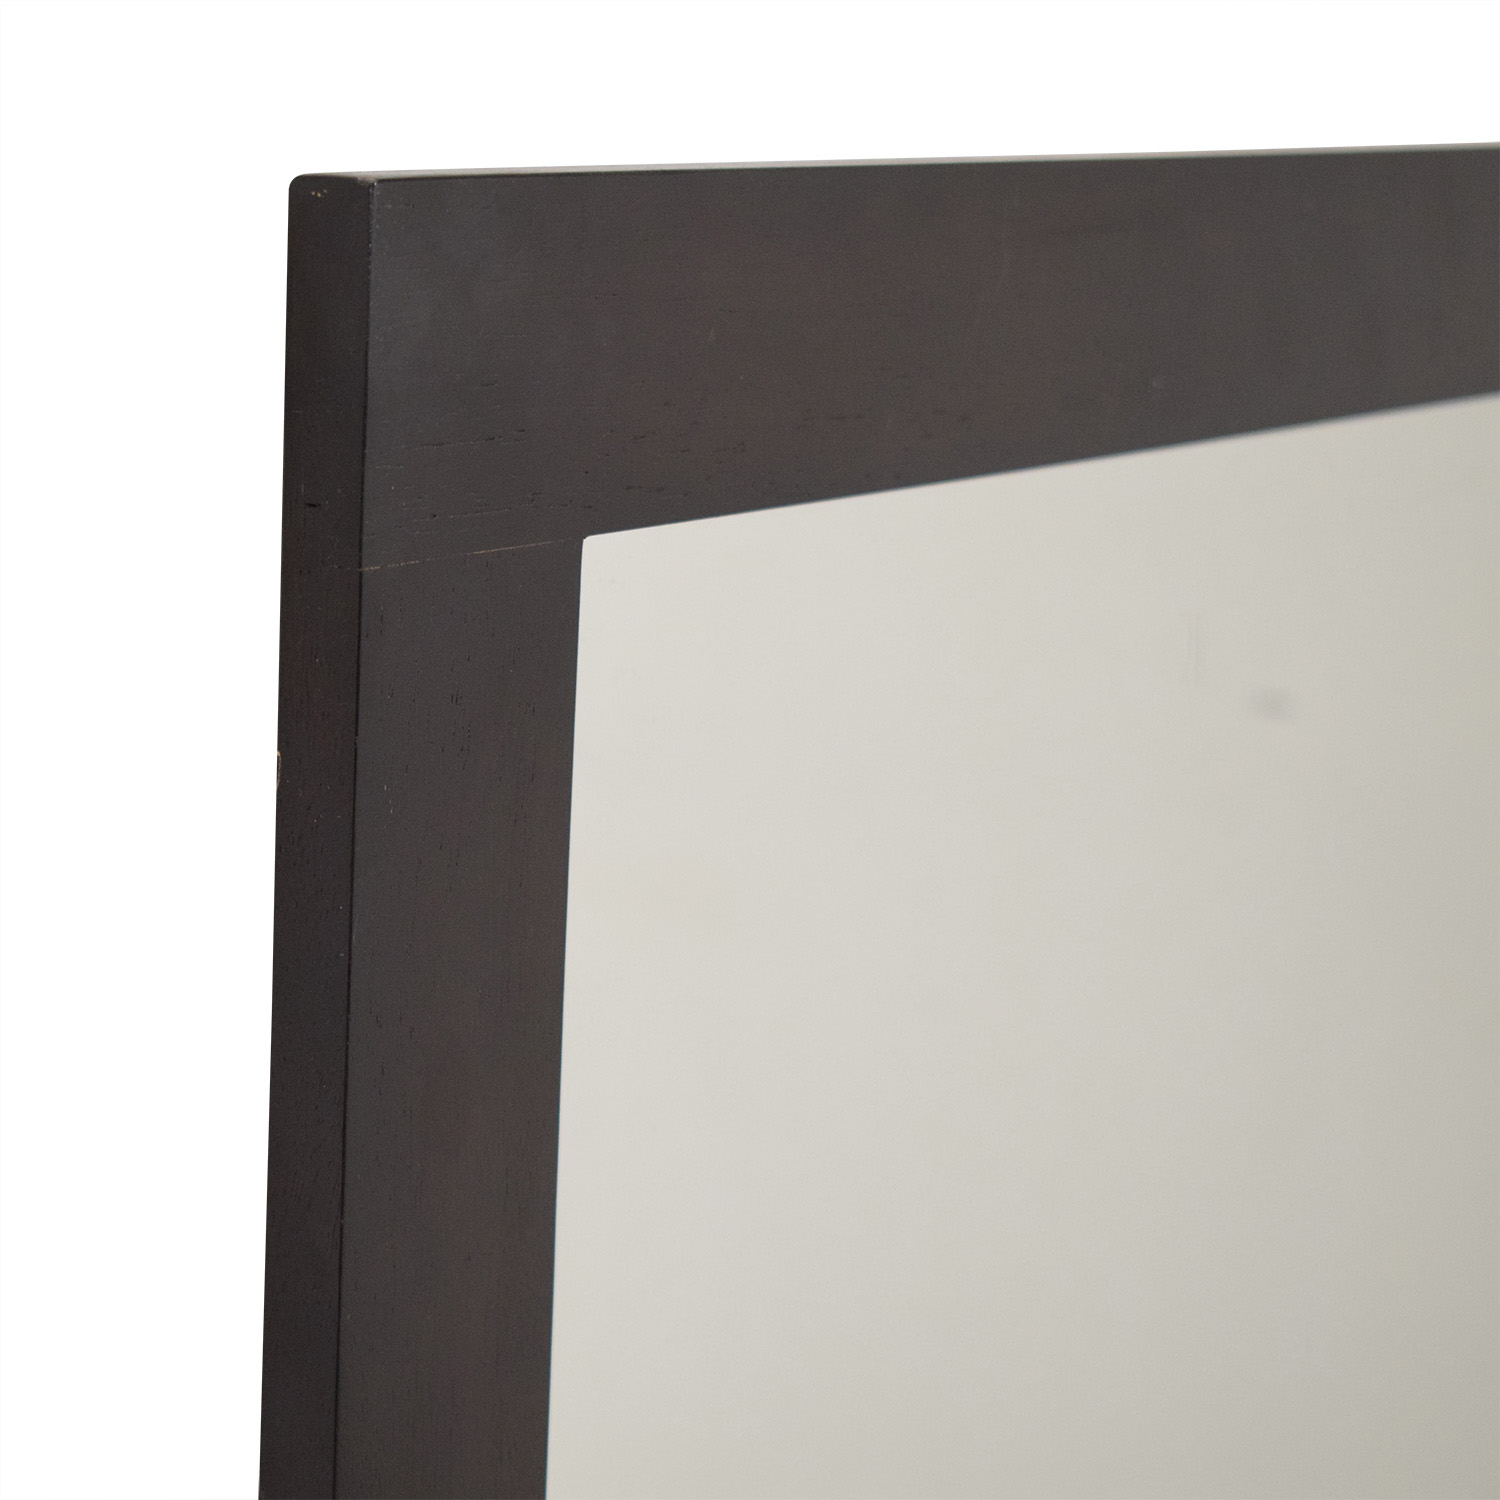 Coaster Fine Furniture Coaster Fine Furniture Square Mirror used